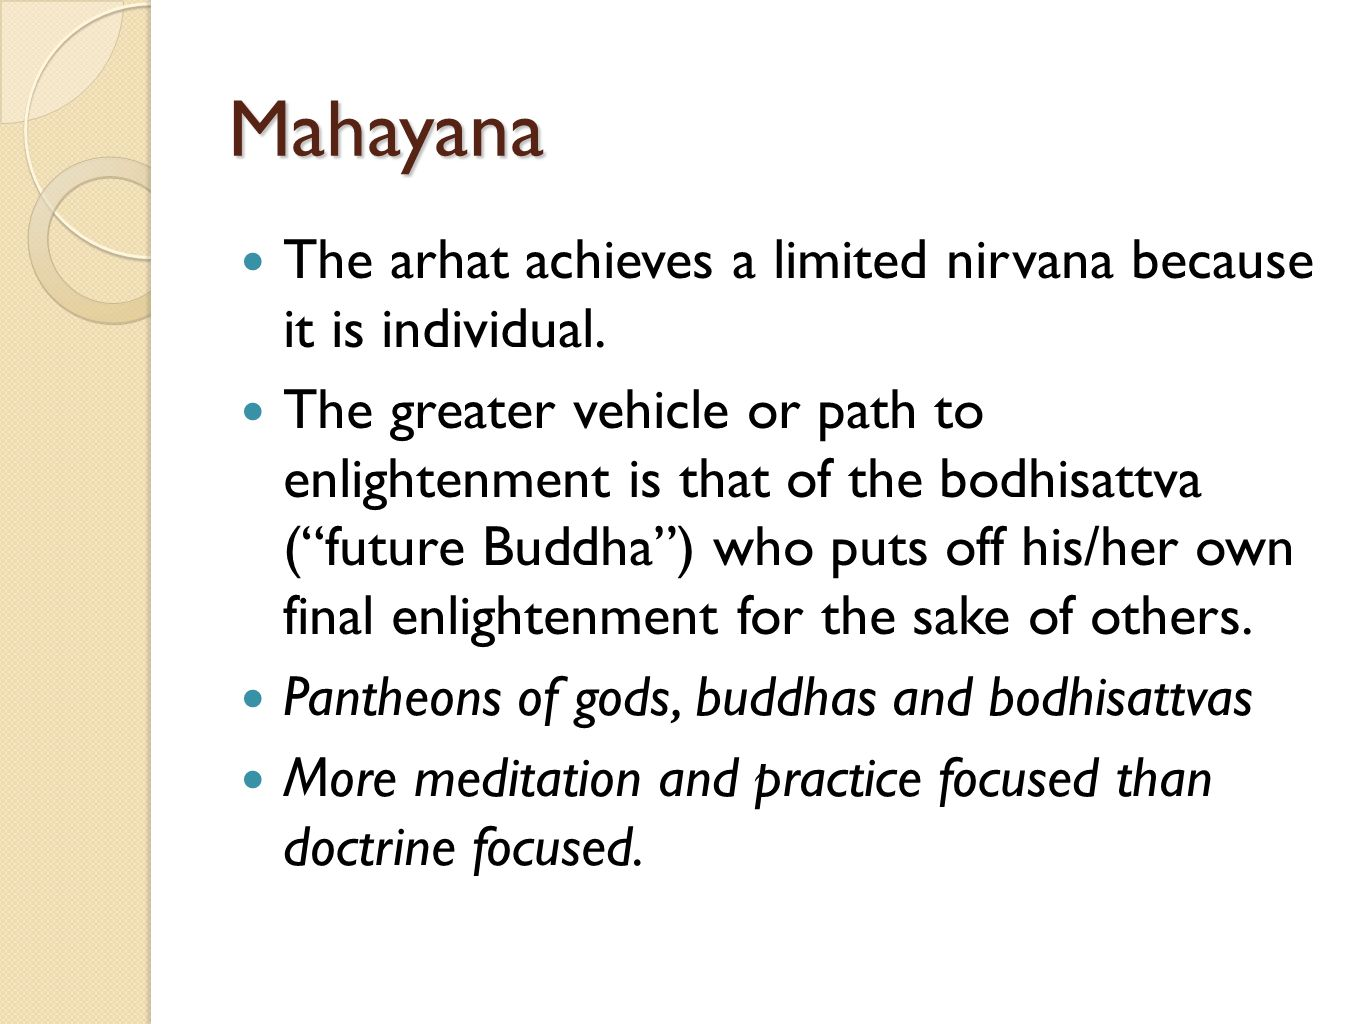 Mahayana The arhat achieves a limited nirvana because it is individual.